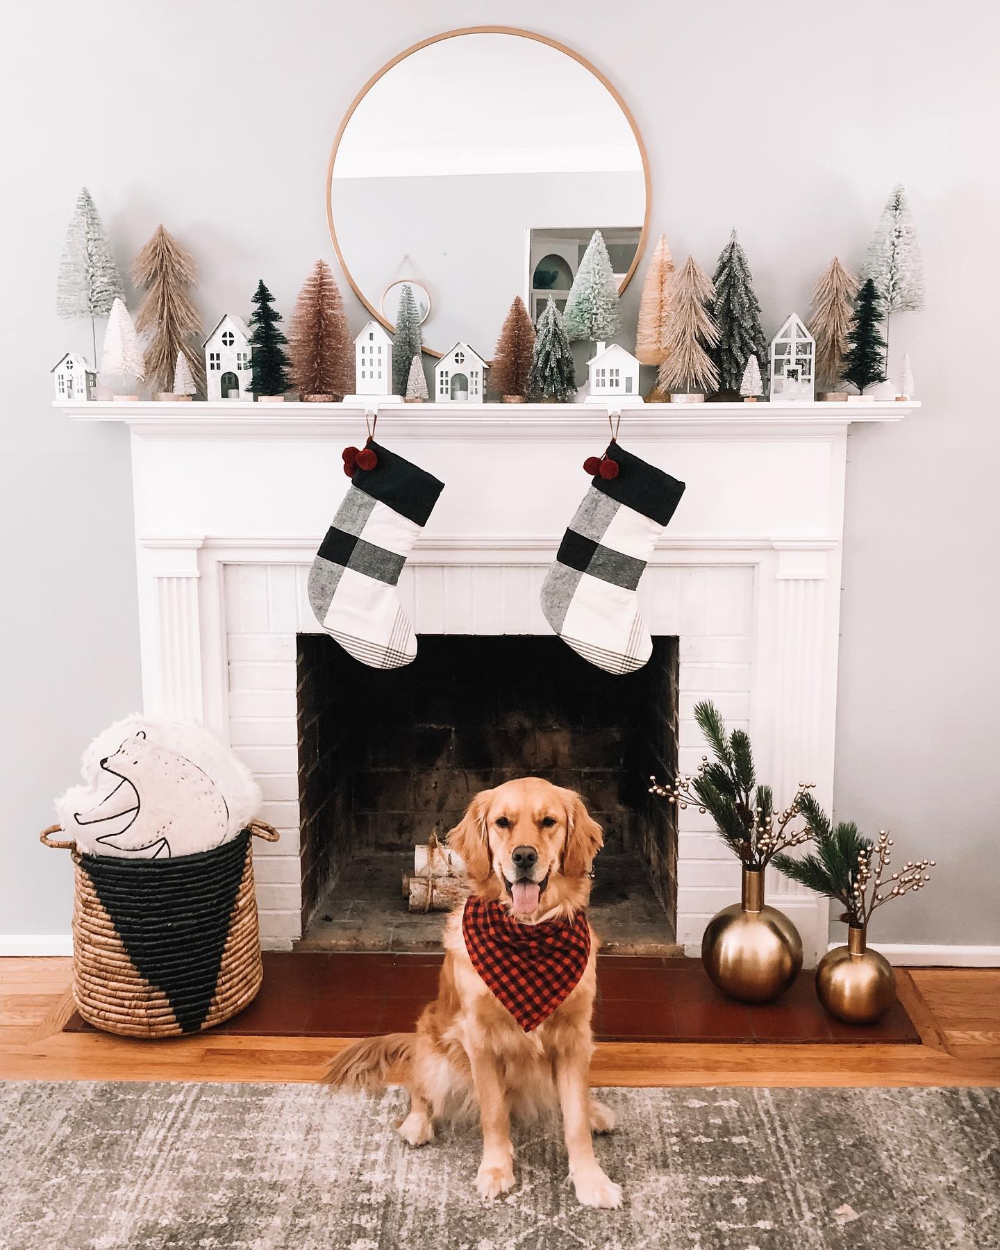 Dear Santa, all I want for Christmas is to be a target doggy model. Love, Emmy ️���� ......#target #targetstyle #goldensofinstagram #goldenretrieversofinstagram #dogsofstlouis #dogsofinstagram #goldens_ofinstagram #goldenretrieversworld #goldensofig